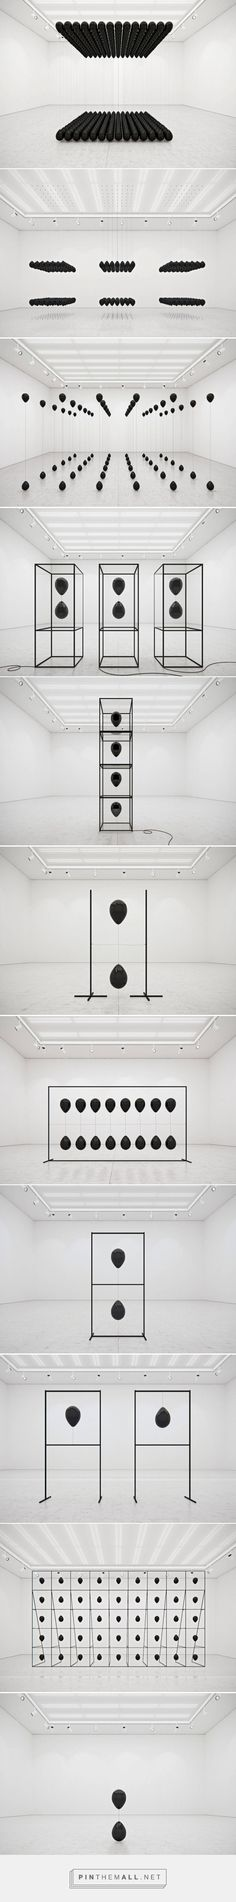 Black Balloons Art Installation – Fubiz Media - created via https://pinthemall.net